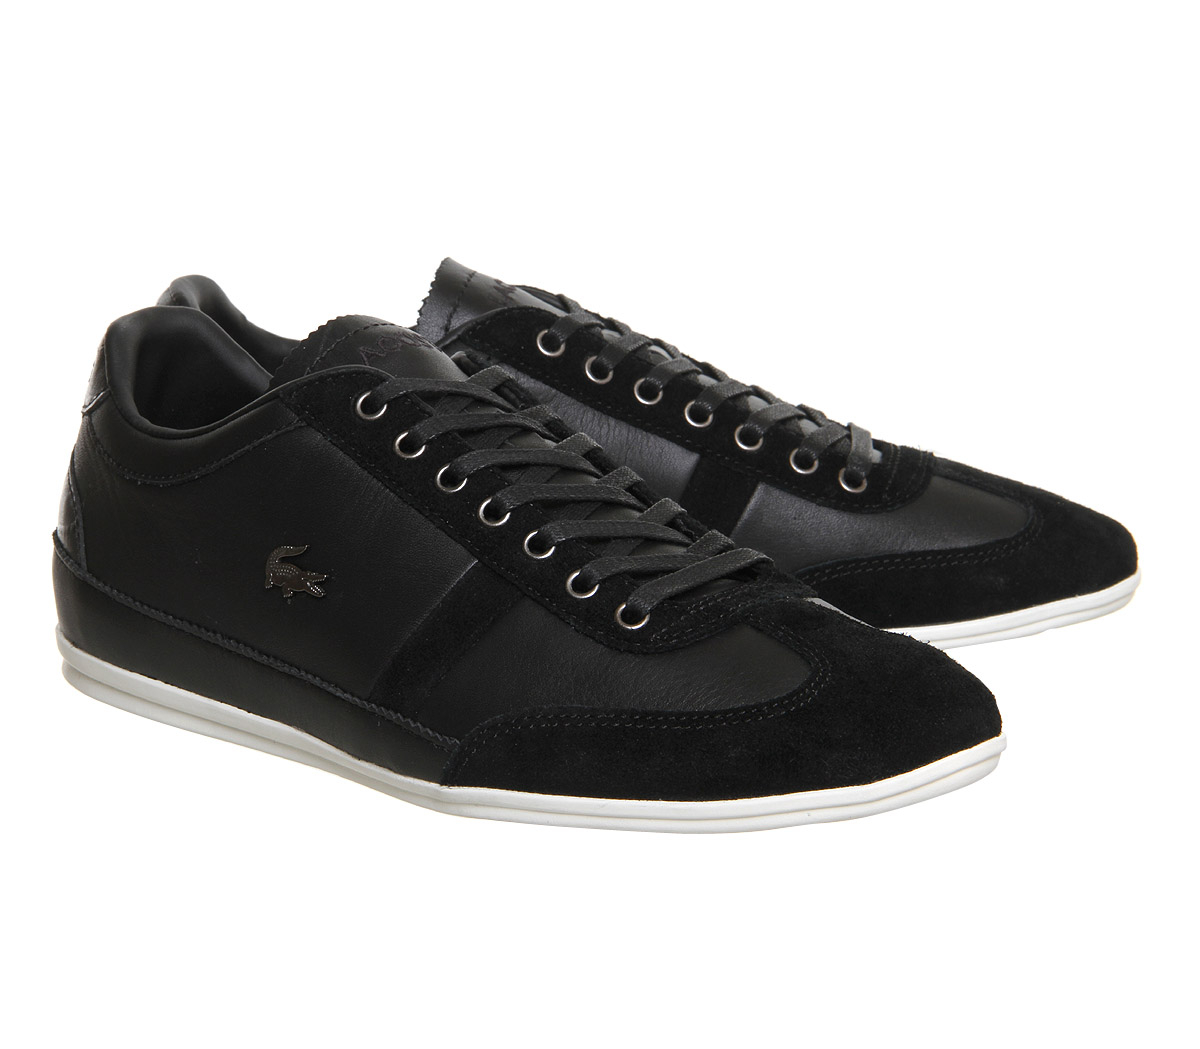 b52a3fef76a5c0 mens lacoste dark brown misano 22 trainers